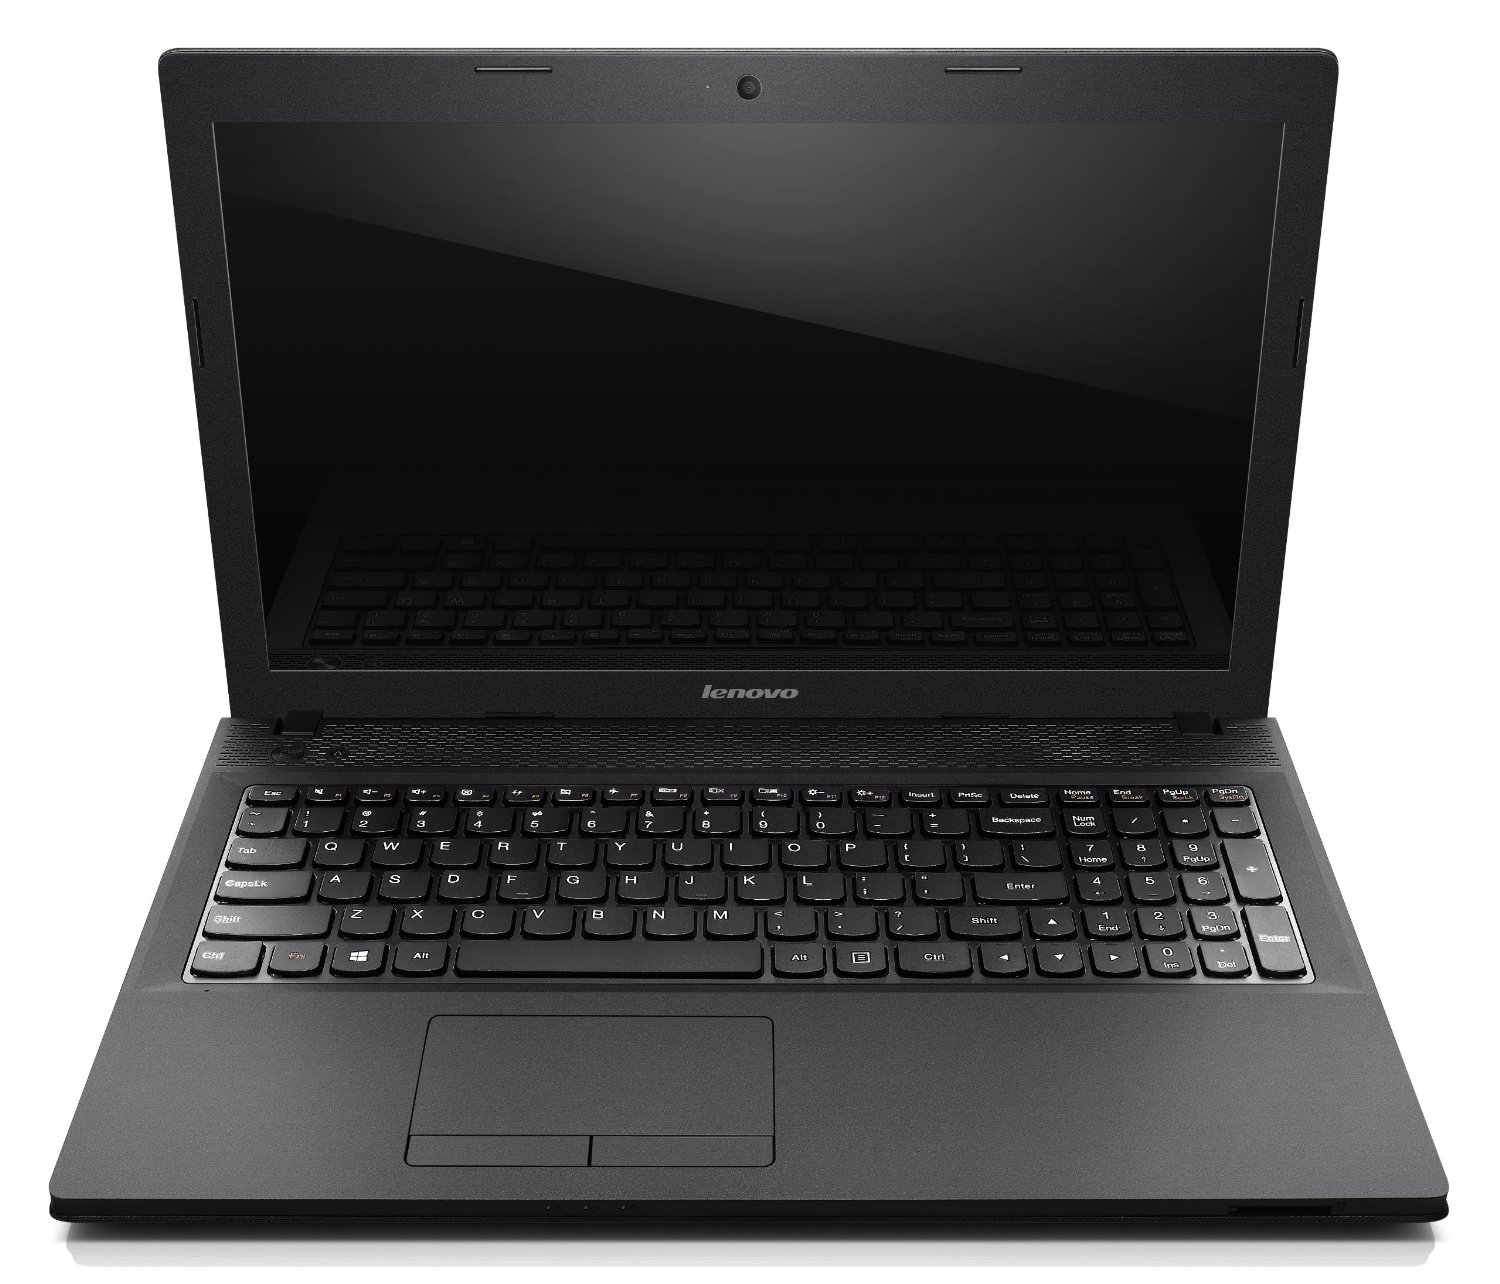 Ноутбук Lenovo IdeaPad 710S Plus-13ISK 80VU002YRK (Intel Core i7-6500U 2.5 GHz/8192Mb/256Gb/No ODD/Intel HD Graphics 520/Wi-Fi/Bluetooth/Cam/13.3/1920x1080/Windows 10 Home 64-bit)